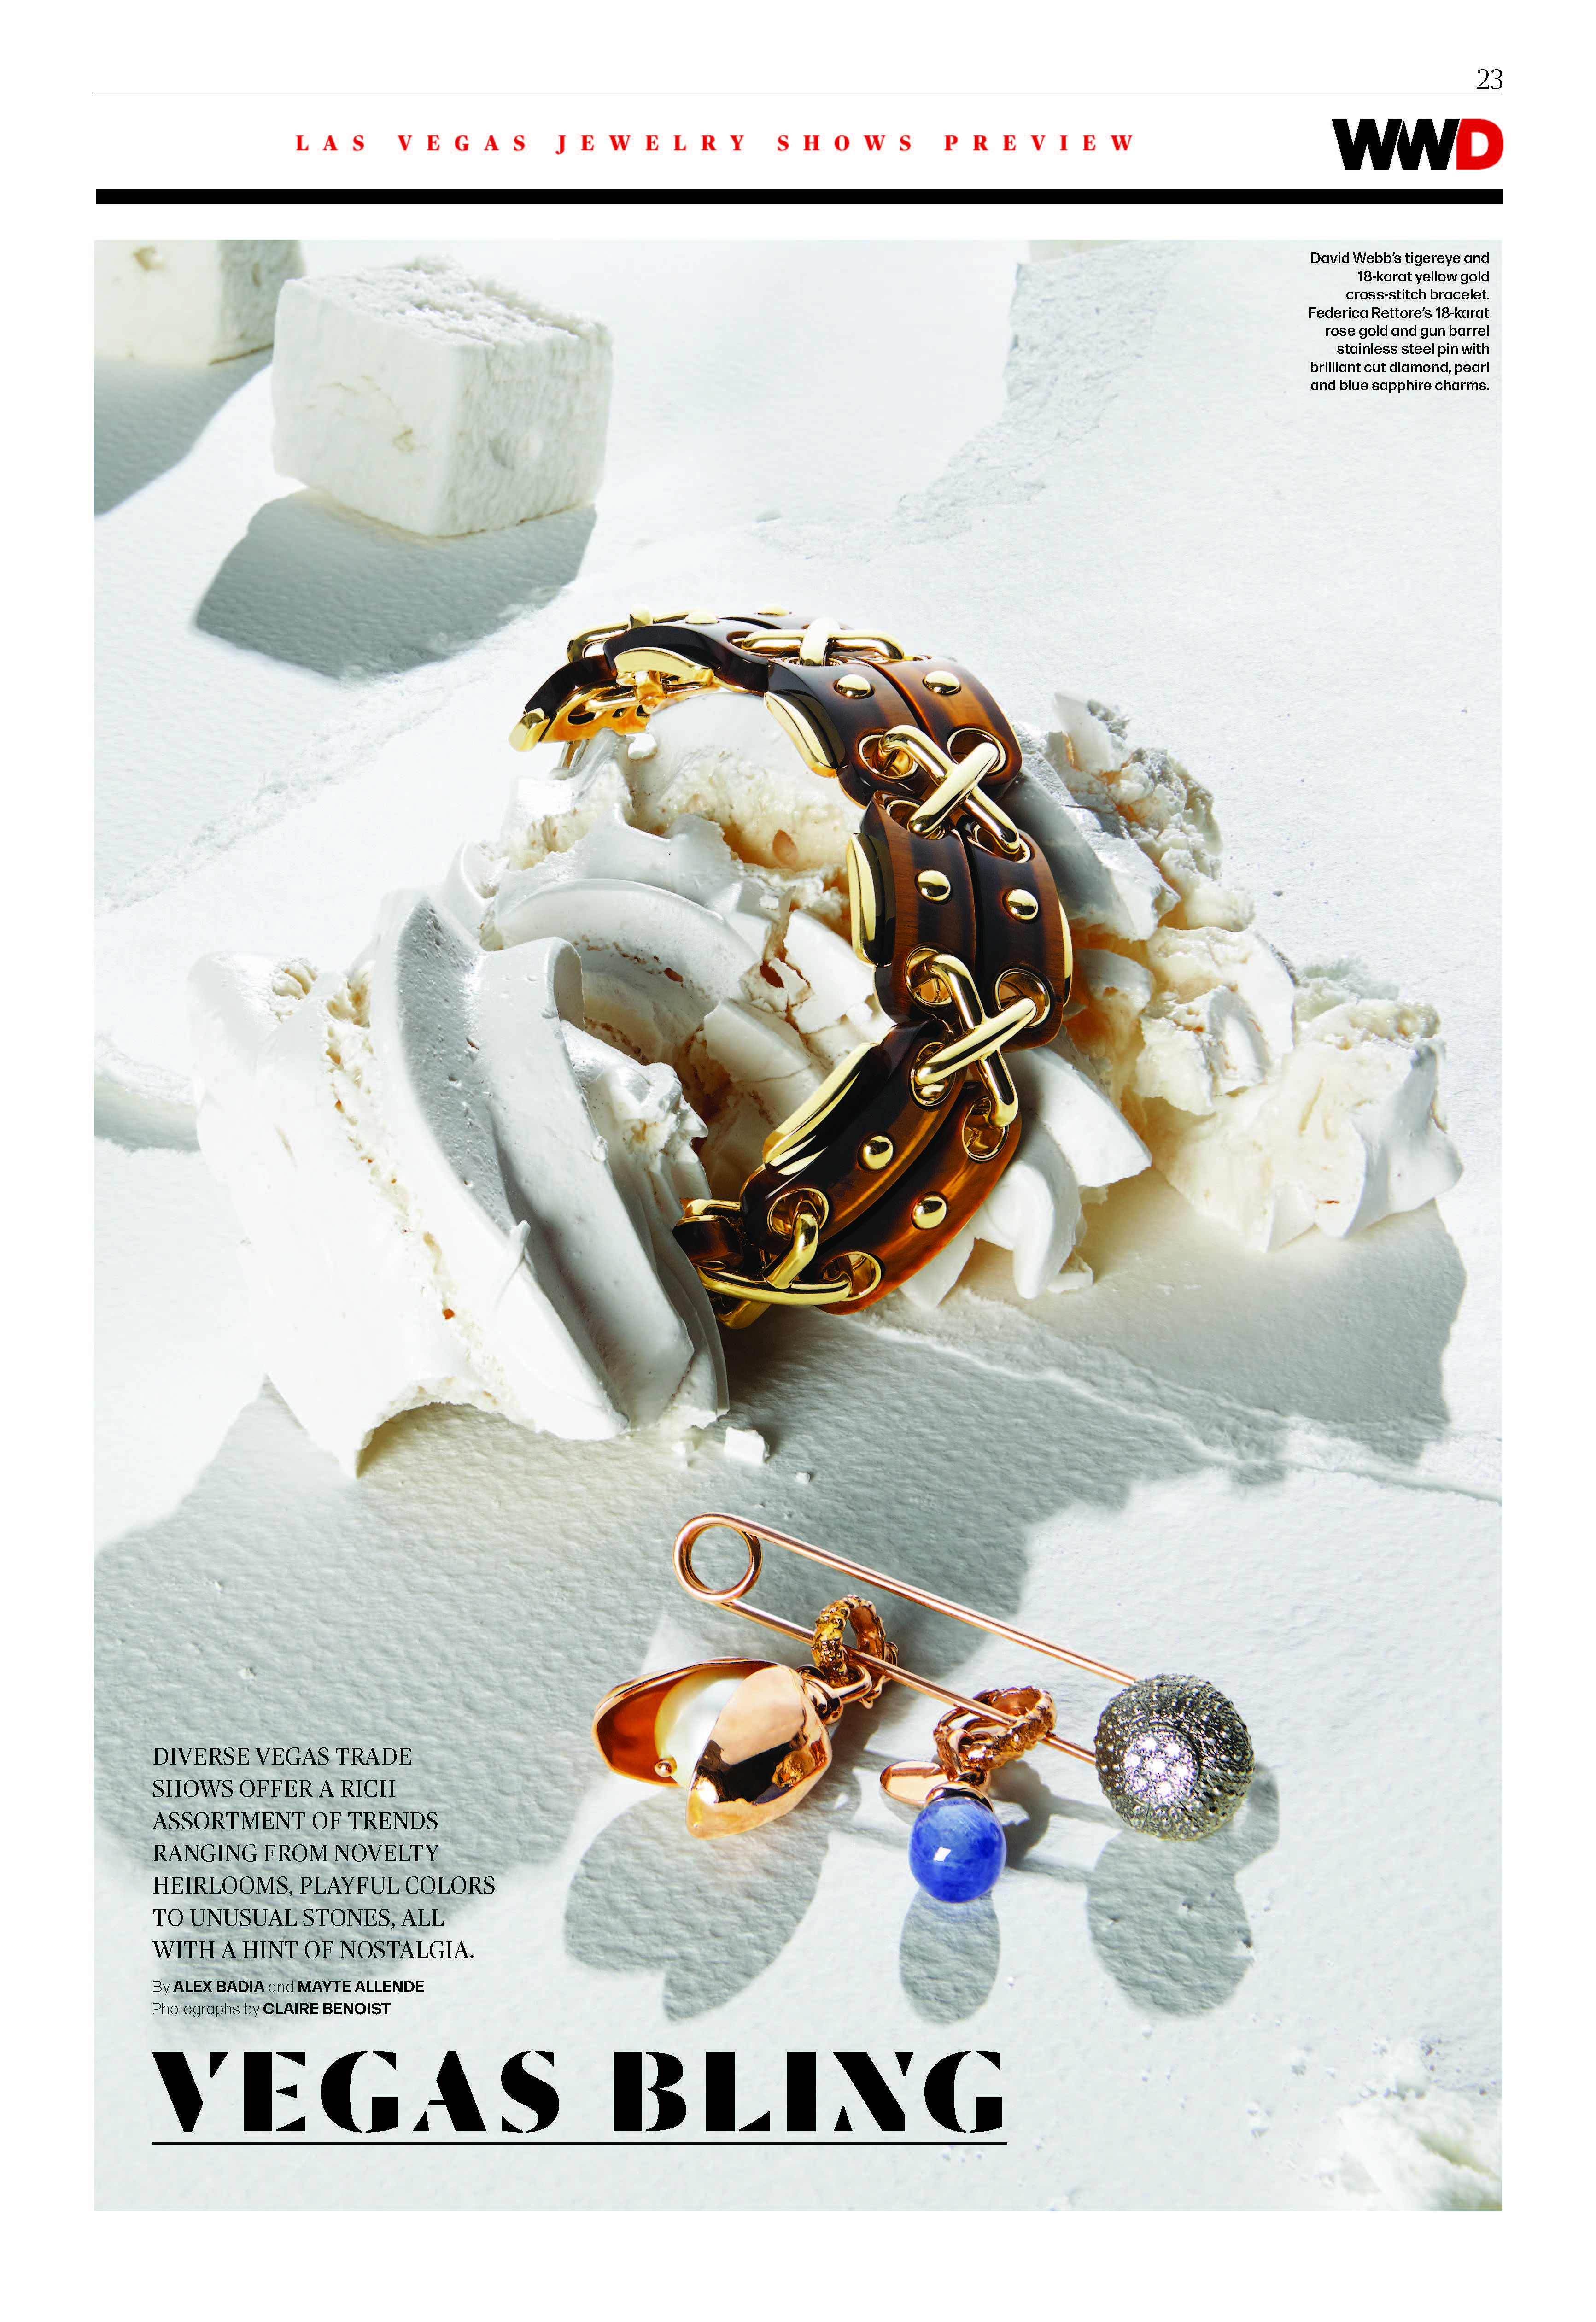 WATCHES AND JEWERLY_WWD_JCK_23_31_Page_1